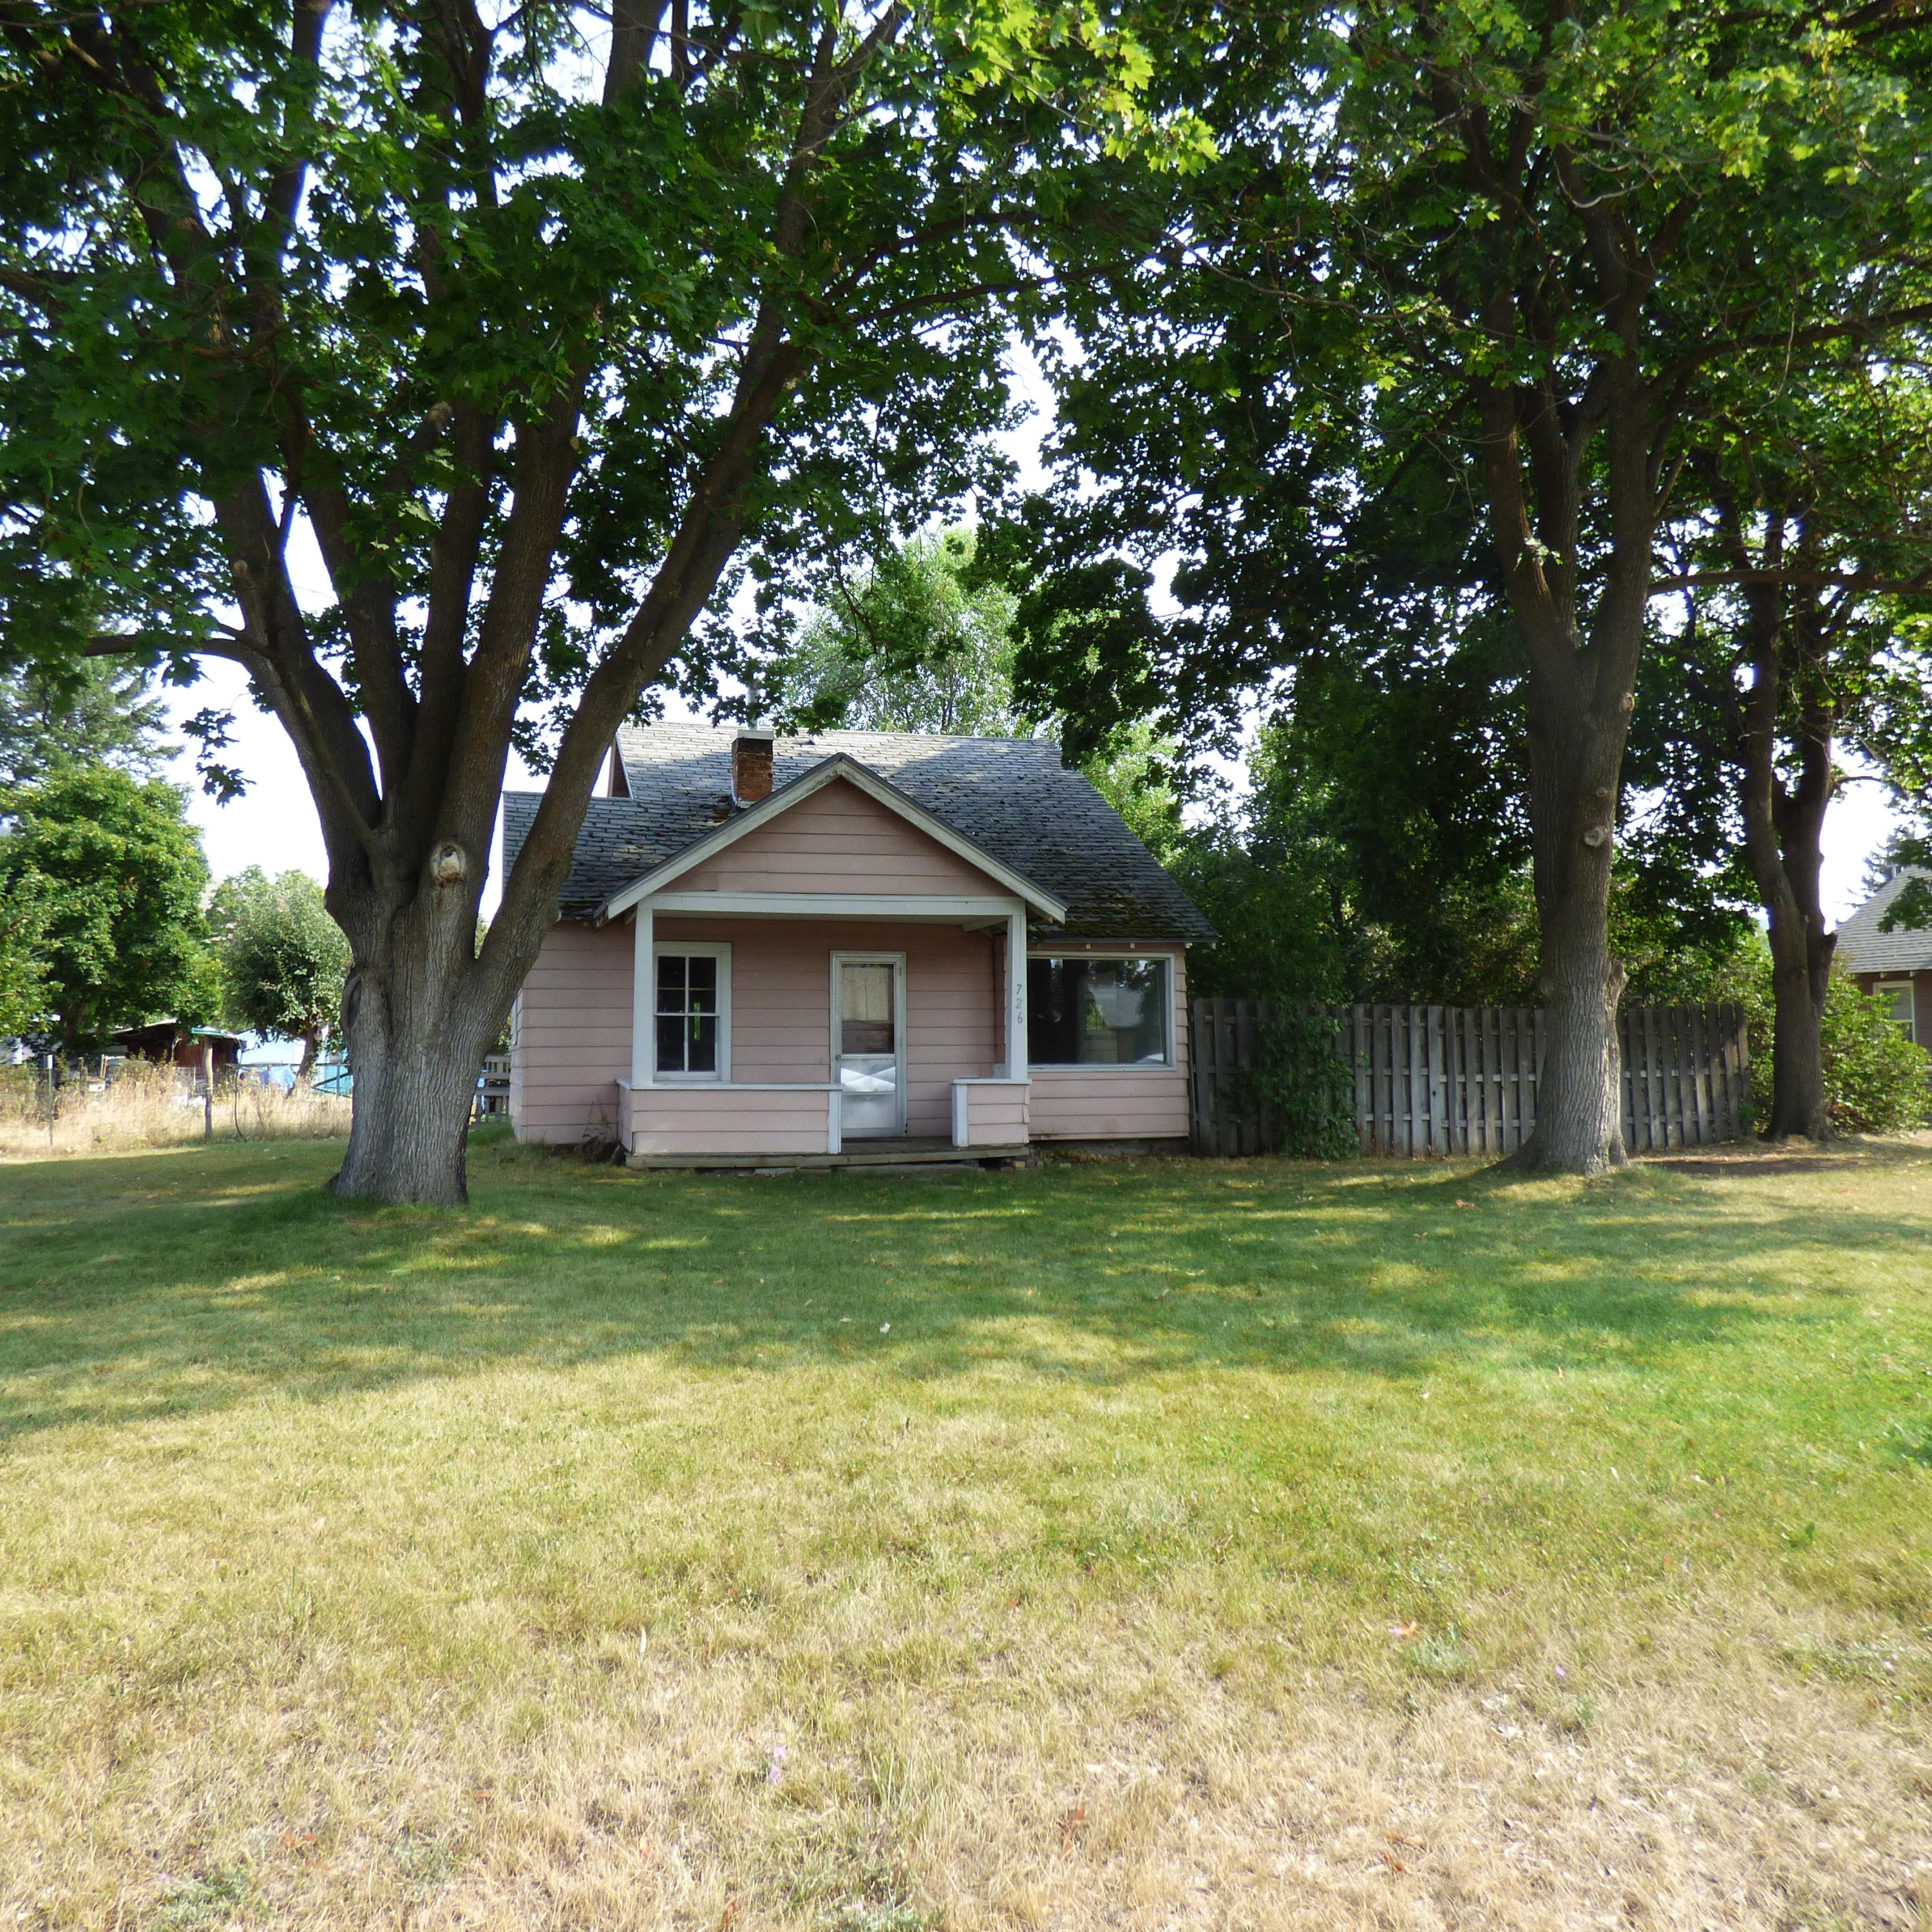 3 Lots (11,717 square feet) in the Slant Streets with RM1-45 Zoning!  There are so many possibilities for development.  House is in poor condition and value is in the land with zoning favorable for development opportunities.  No showings to be arranged, however, there will be an open house on Sunday, June 6 from 1-4.  Please do not approach renters, or enter yard.  Call Lorin/Amy Peterson at (406) 370-4144, or your real estate professional.